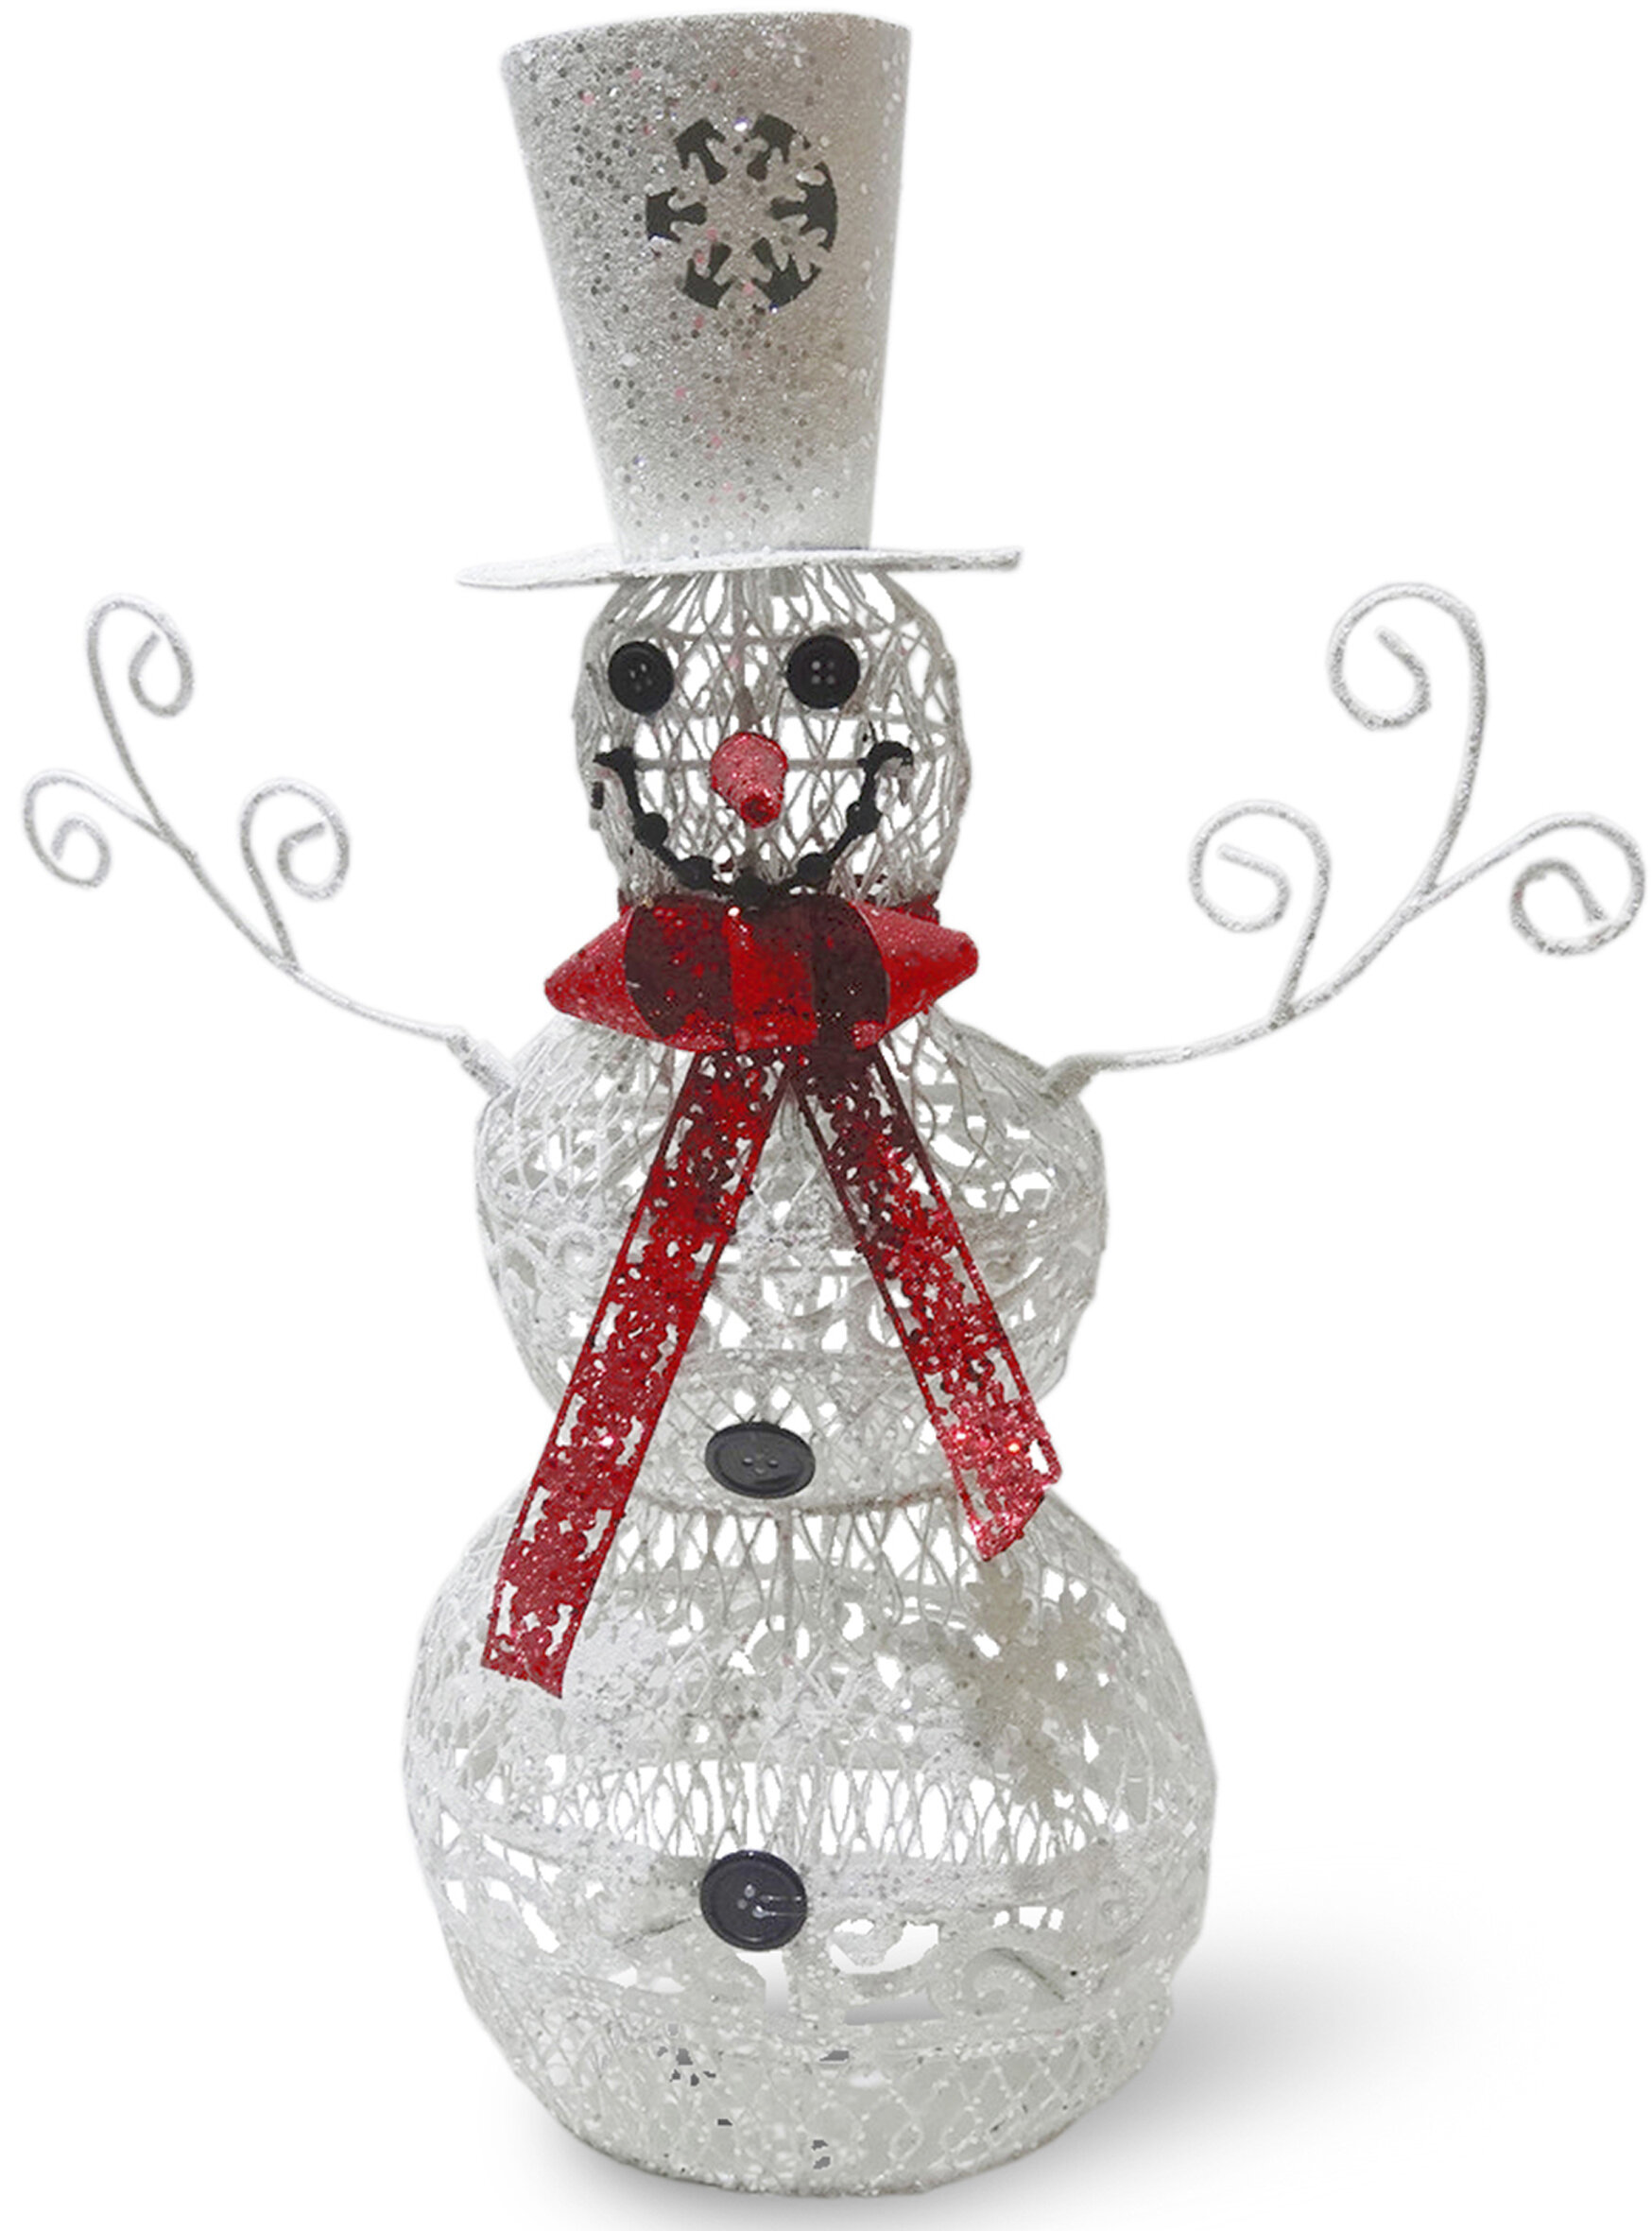 pdx decorations animated outdoor the wayfair aisle christmas decor inflatable holiday snowman reviews